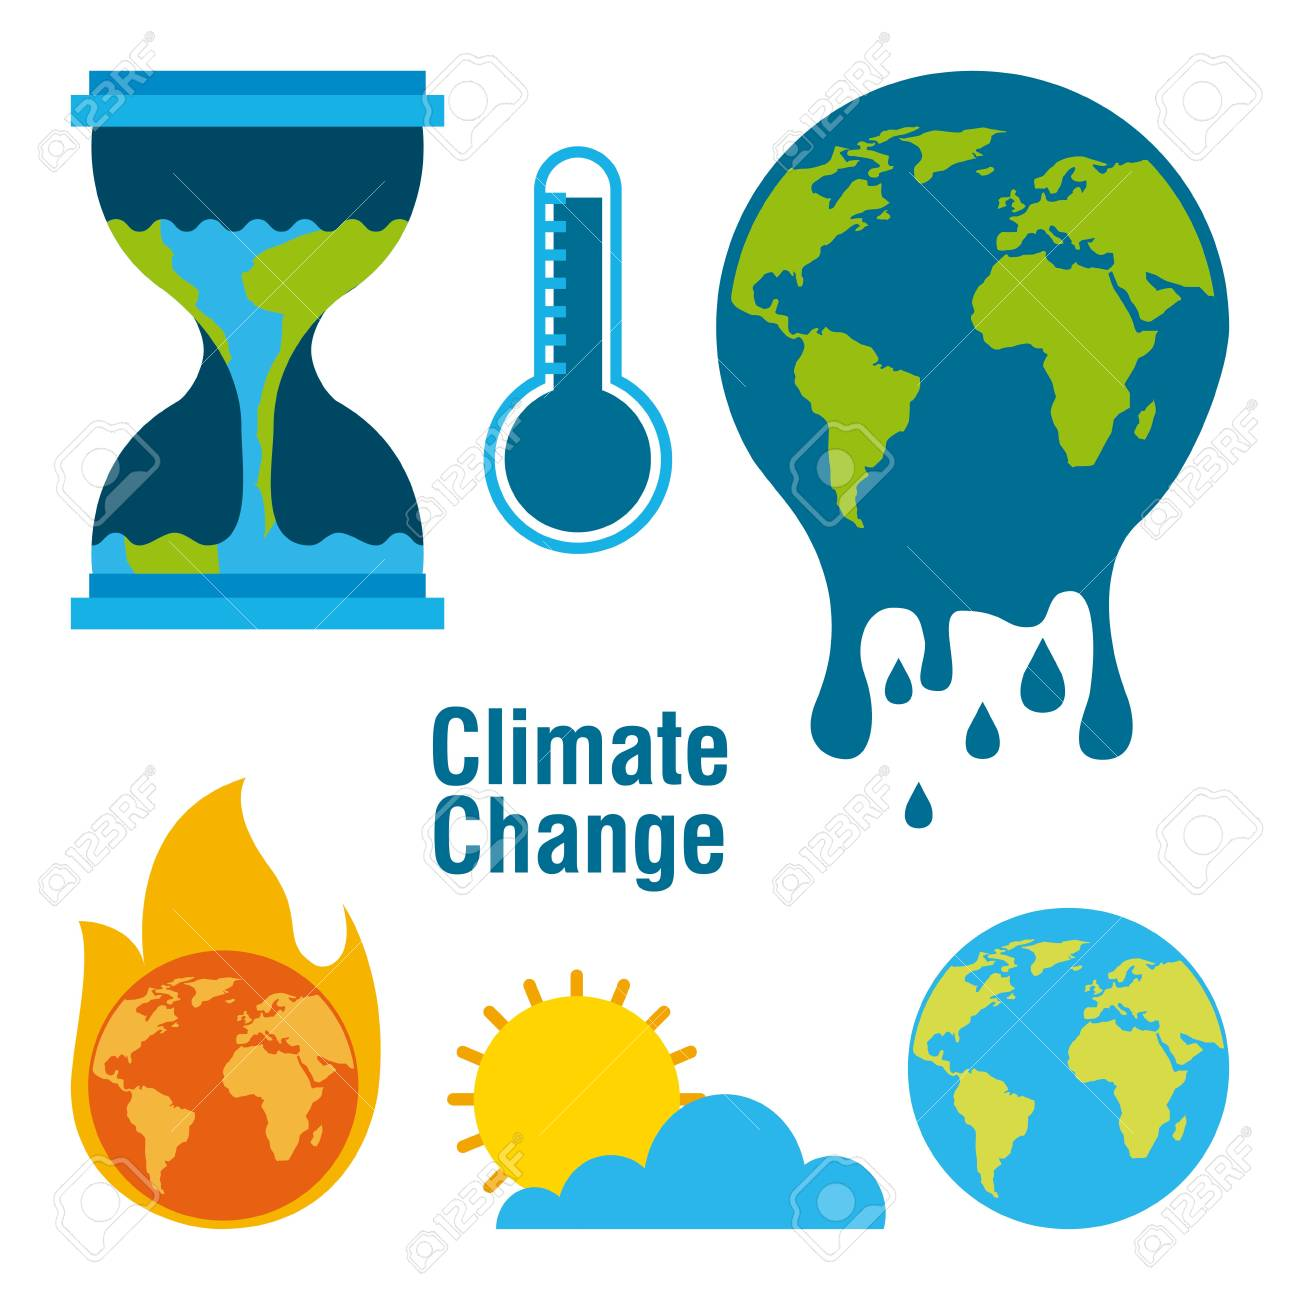 climate change temperature planet world fire melted time vector illustration - 95908449